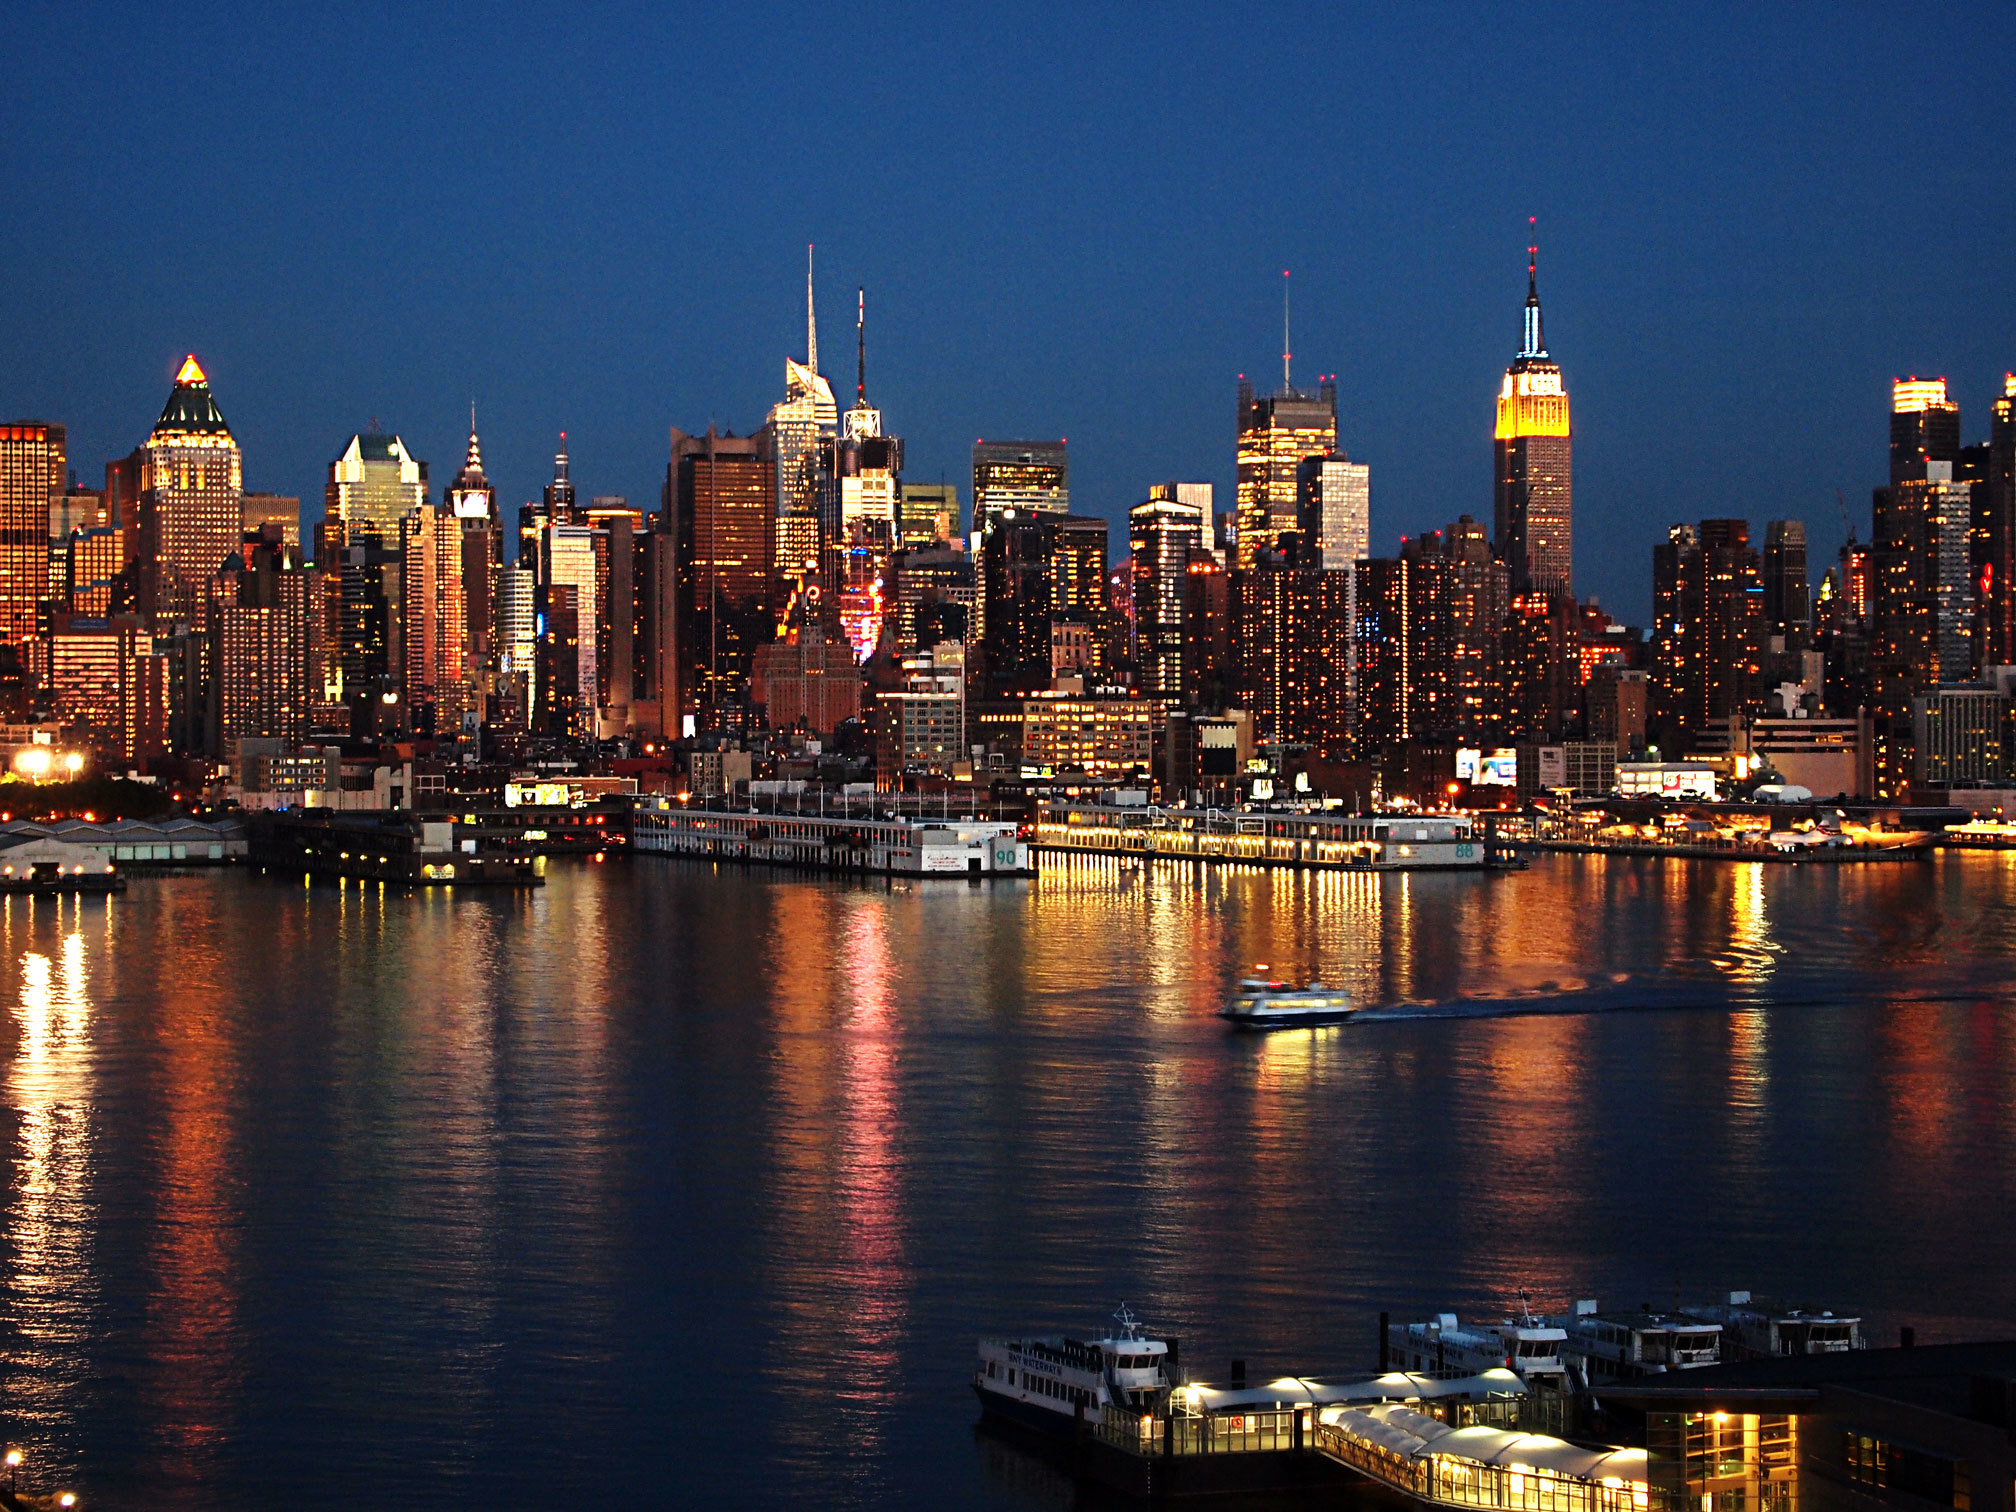 NYC is now the second most expensive U.S. city to live in